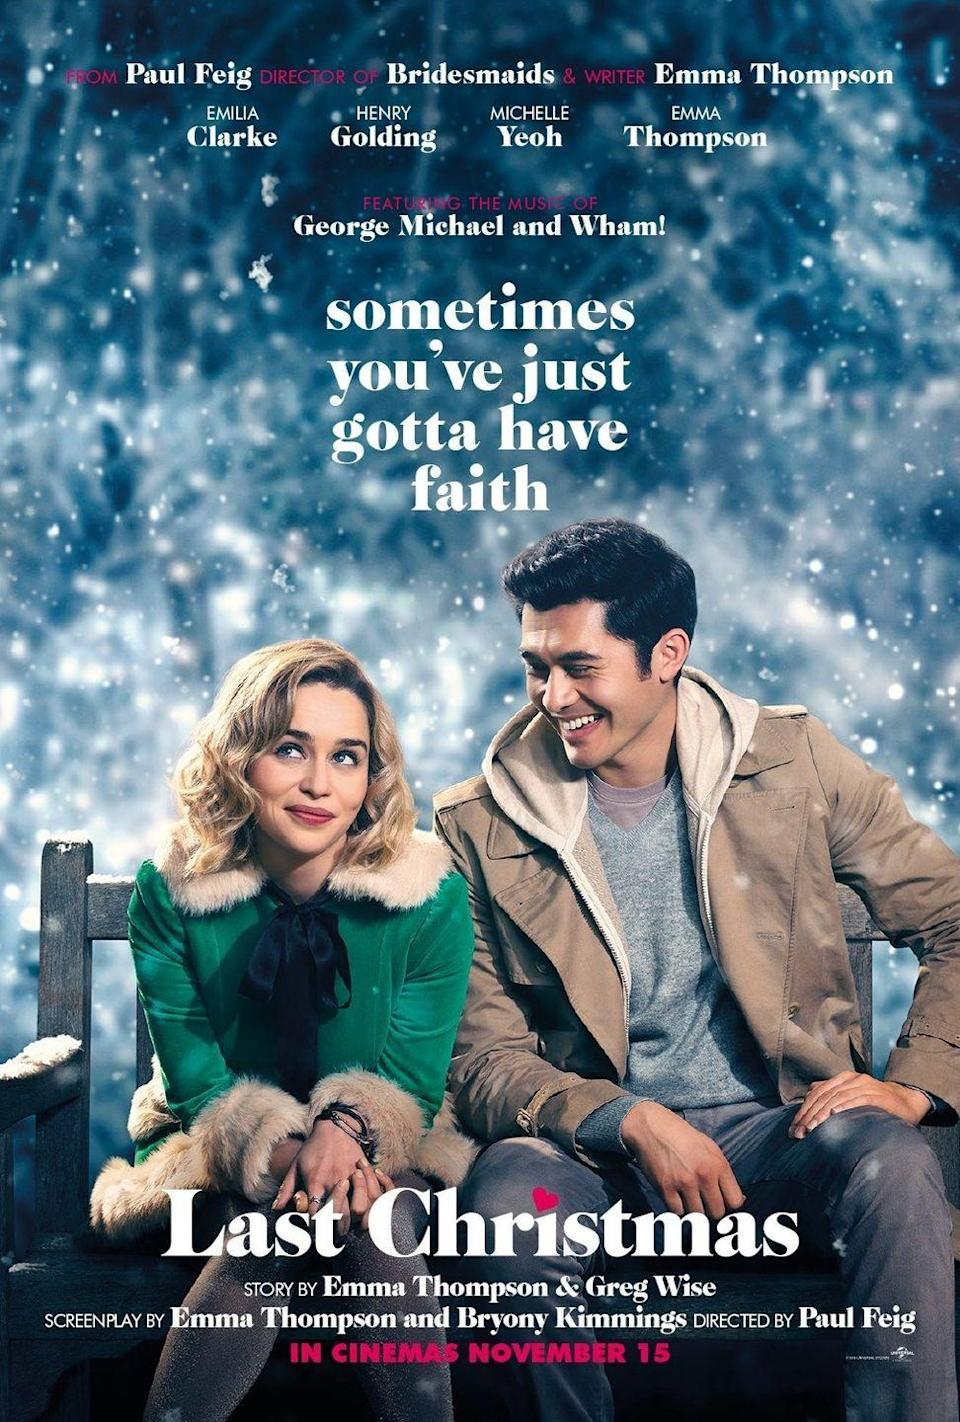 """<p>In this recent holiday rom-com, <em>Game of Thrones' </em>Emilia Clarke plays a Christmas store elf who meets the charming Tom, played by Henry Golding. Cue the romance and holiday magic!</p><p><a class=""""link rapid-noclick-resp"""" href=""""https://www.amazon.com/Last-Christmas-Emilia-Clarke/dp/B07ZL565X1?tag=syn-yahoo-20&ascsubtag=%5Bartid%7C10055.g.1315%5Bsrc%7Cyahoo-us"""" rel=""""nofollow noopener"""" target=""""_blank"""" data-ylk=""""slk:WATCH NOW"""">WATCH NOW</a><br></p>"""